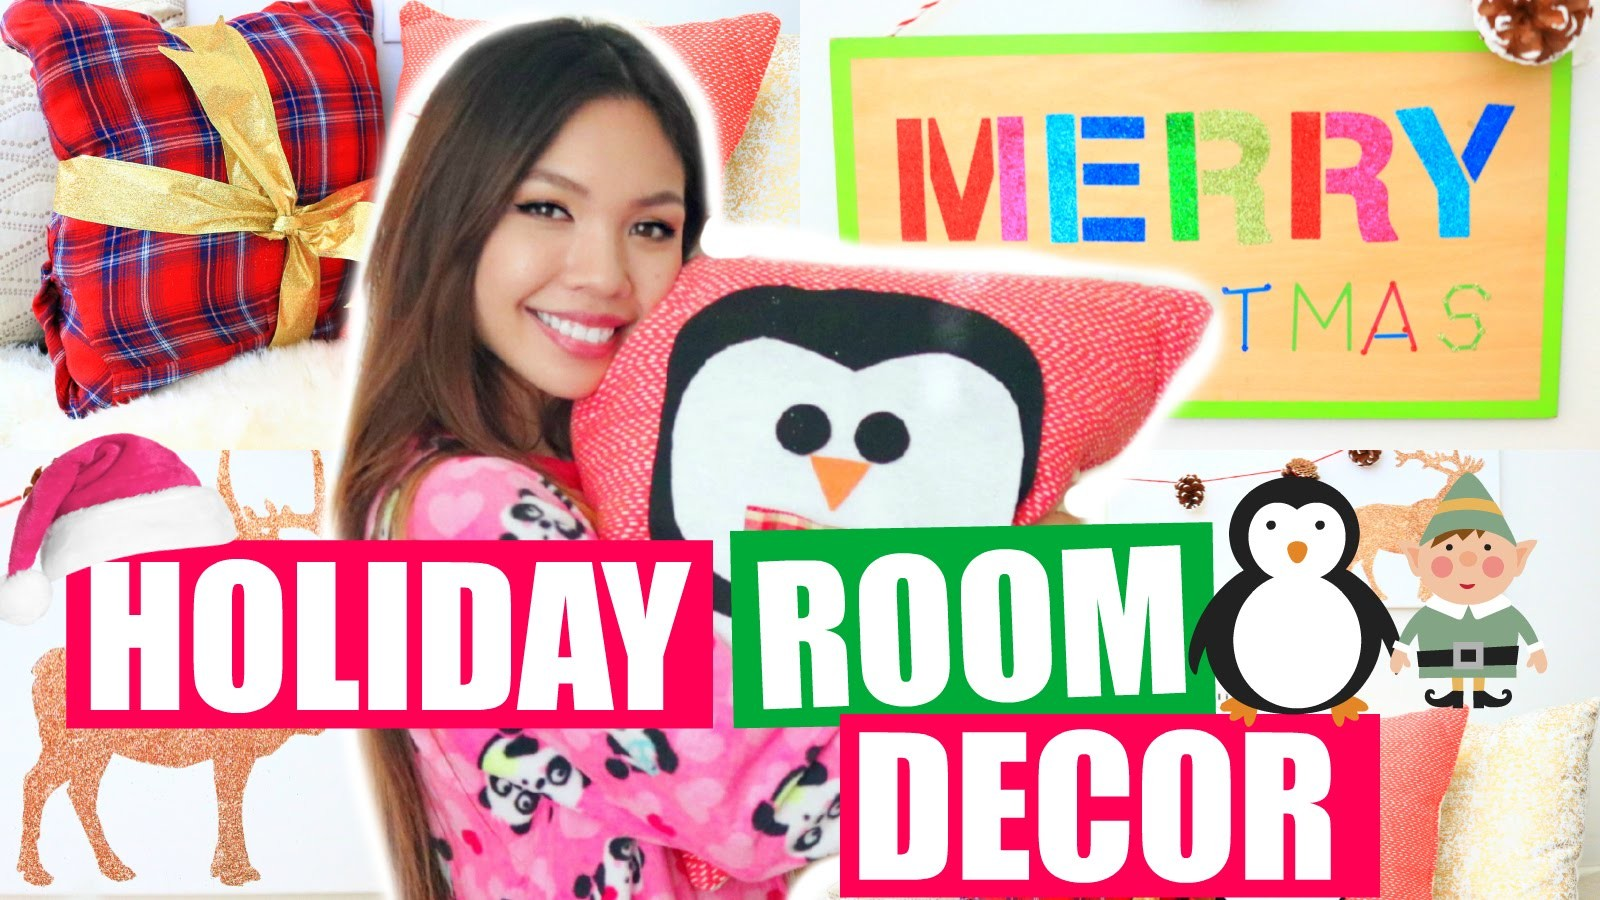 Easy DIY Holiday Room Decor Ideas! | CHRISTMAS 2015